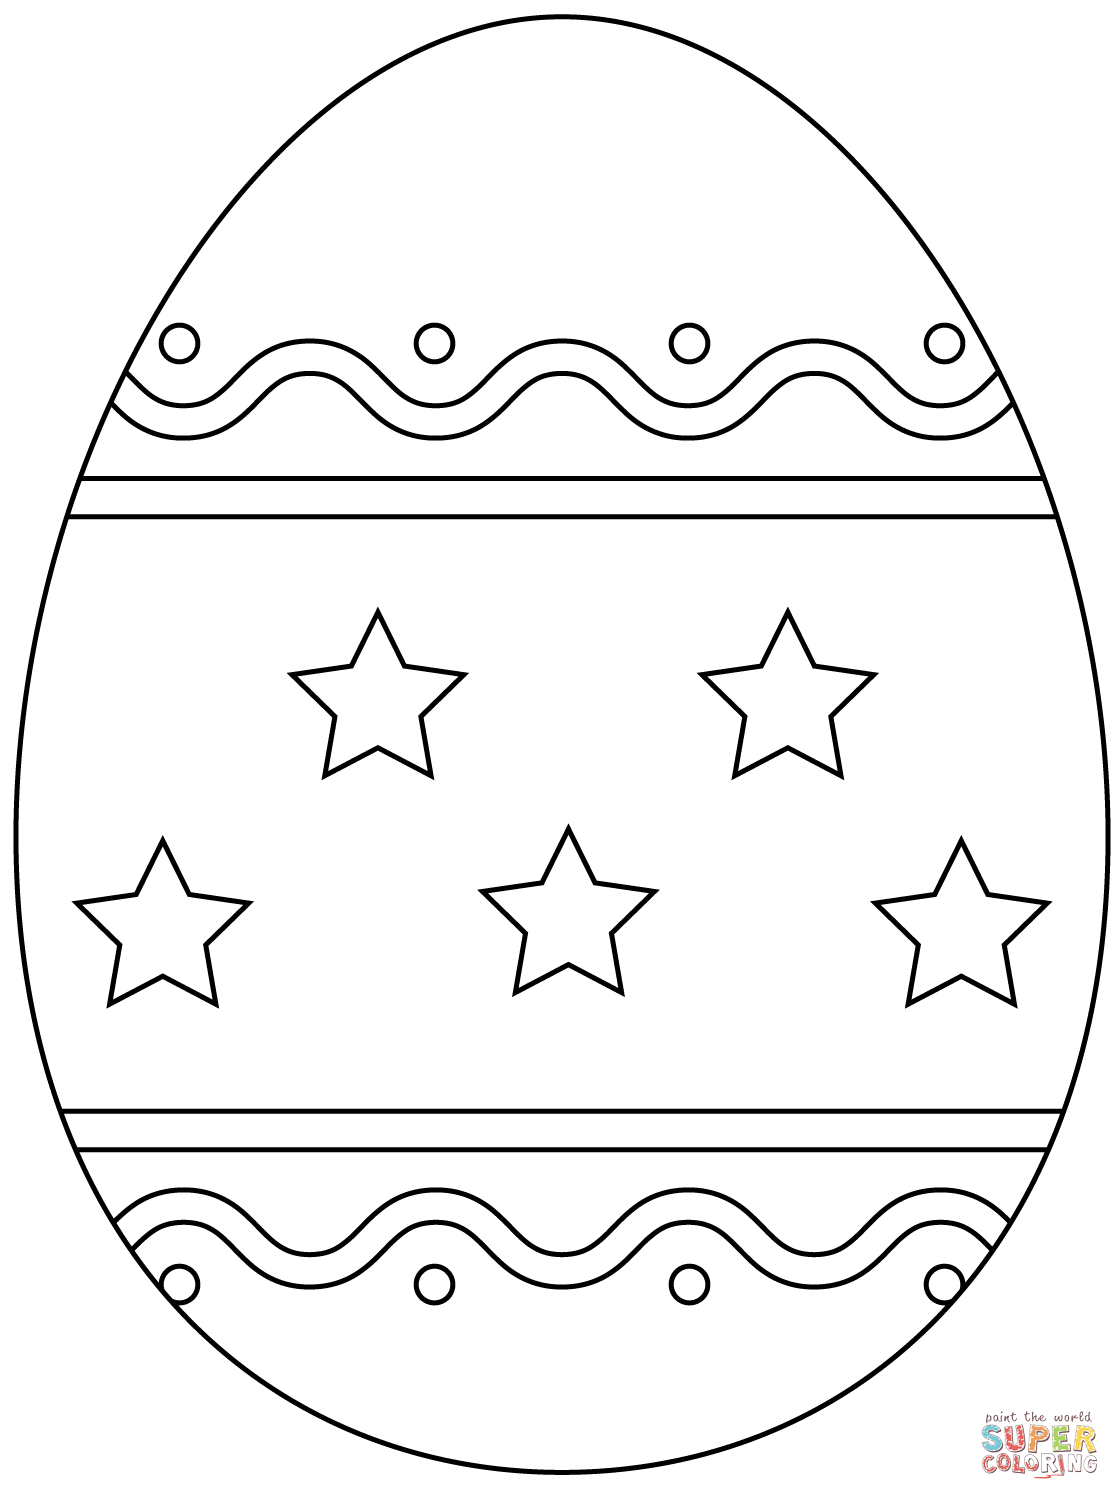 plain easter egg coloring pages easter egg with simple pattern coloring page free egg coloring easter plain pages